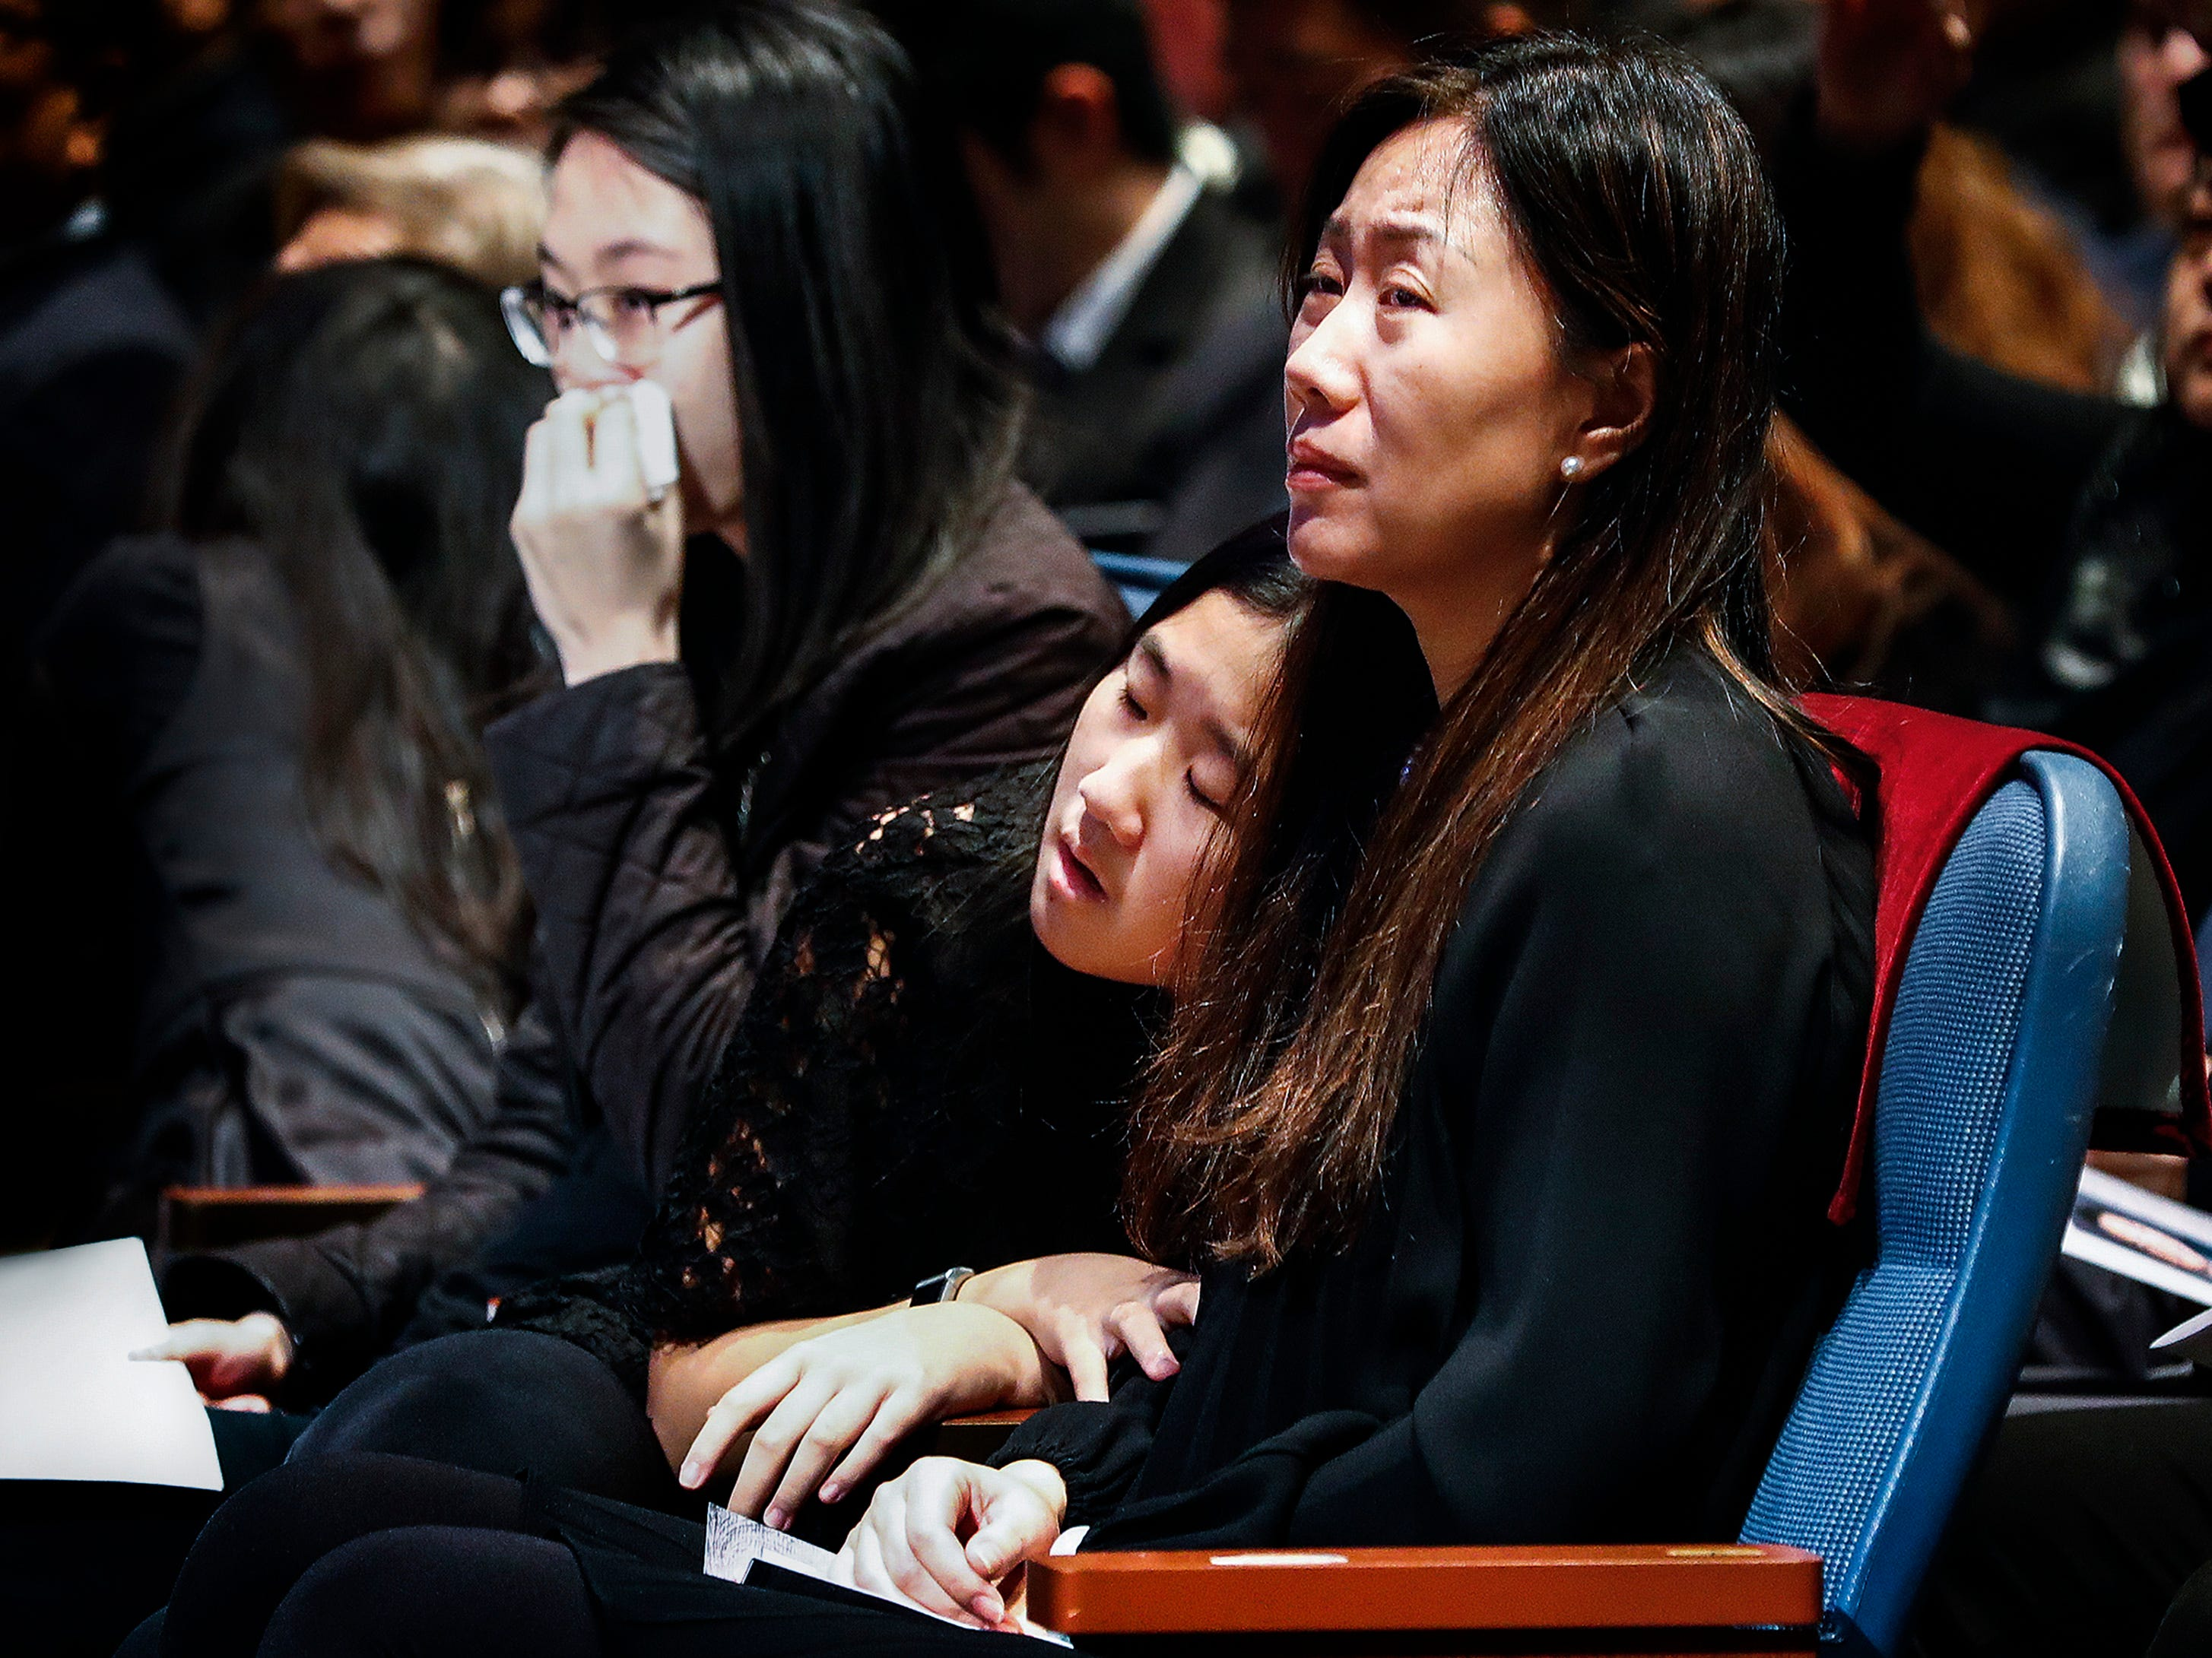 Isabel Chen (right) grieves with her daughters during a memorial service for her husband Wei Chen, a Memphis businessman who died along with three other people in a plane crash in Georgia.